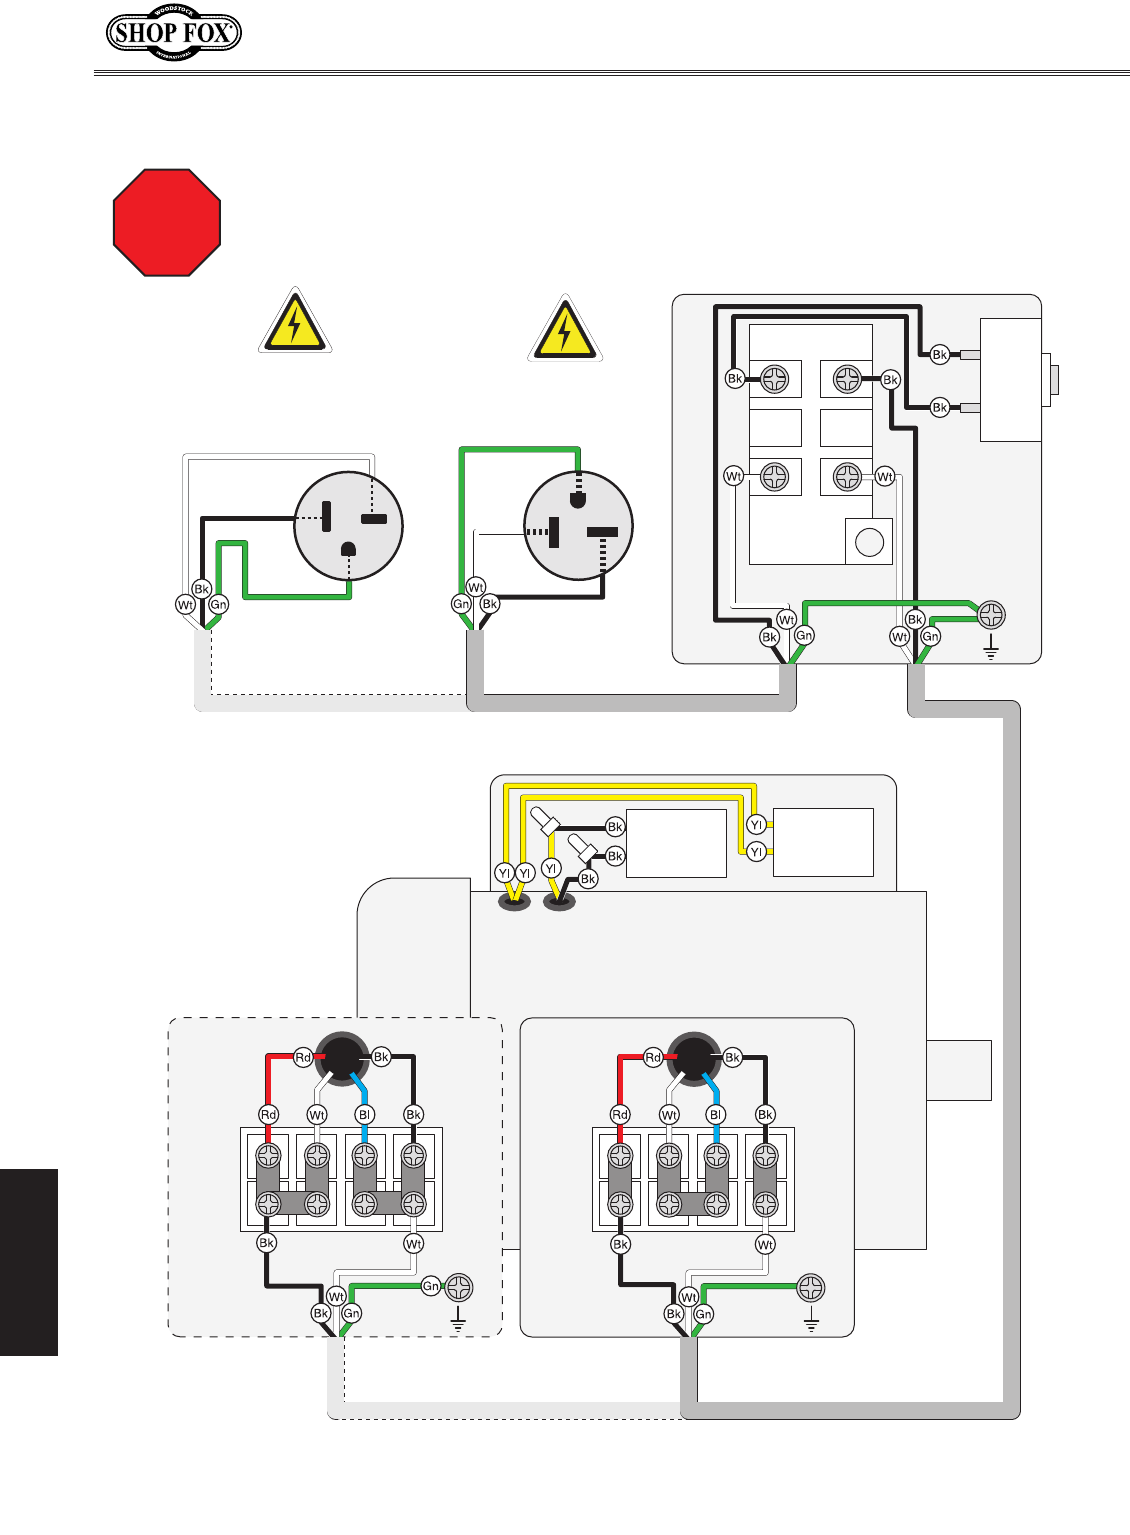 Vaillant  bi Boiler Wiring Diagram besides Wiring A Ac Thermostat Diagram additionally Pontiac Montana Hvac Diagram as well Robertshaw Thermostat Line Voltage 3 Phase Wiring Diagram also Nest 3rd Generation Thermostat And C Plan System. on nest thermostat wiring